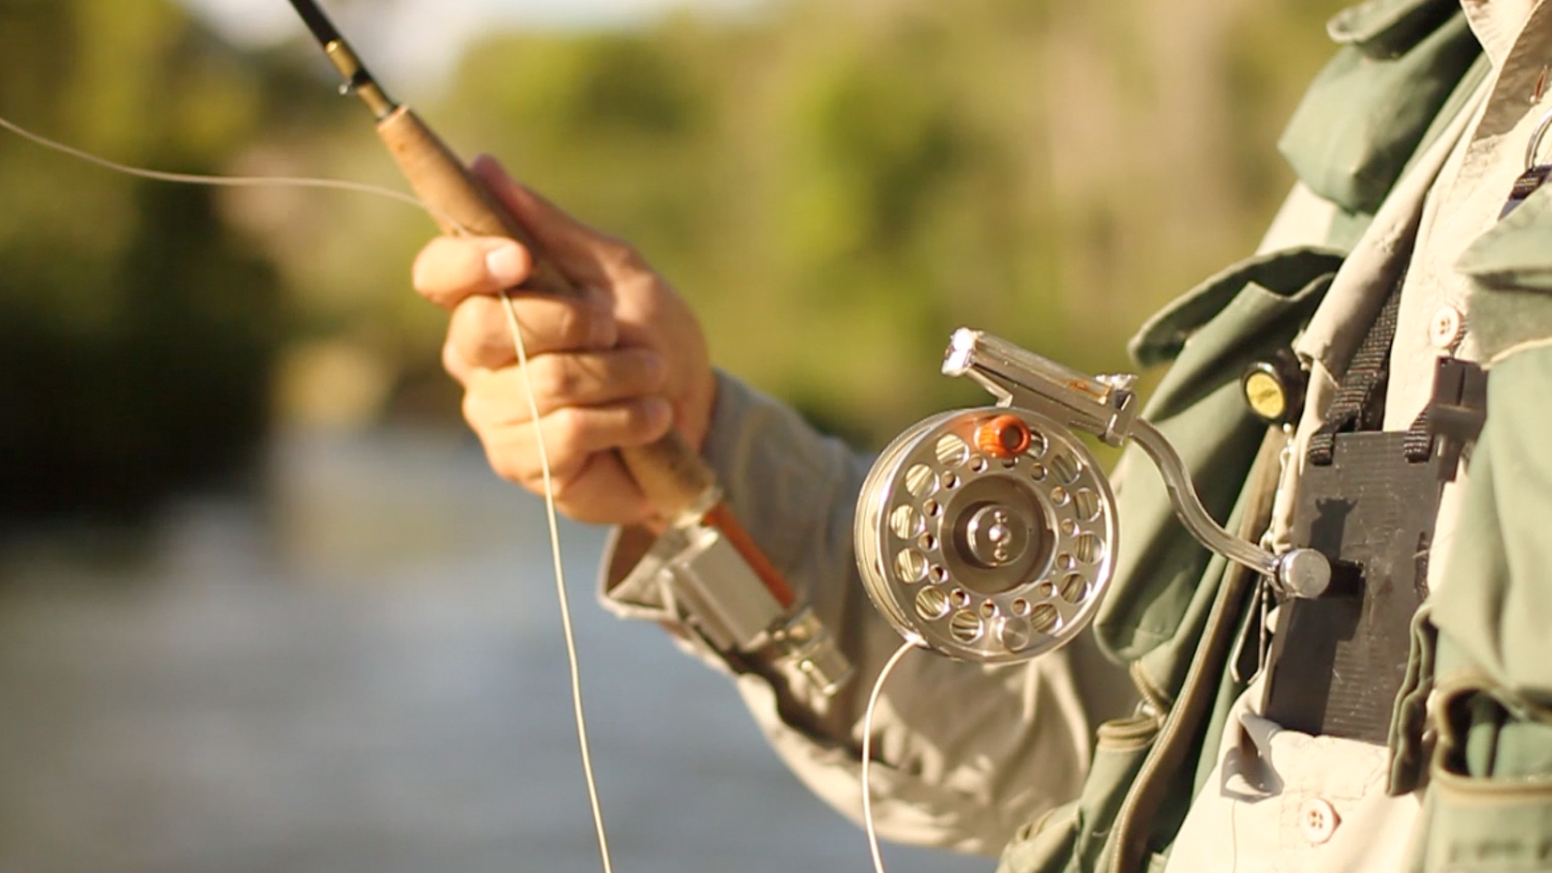 Rexfly casting system for fly fishing by rex huang for Fly fishing casting